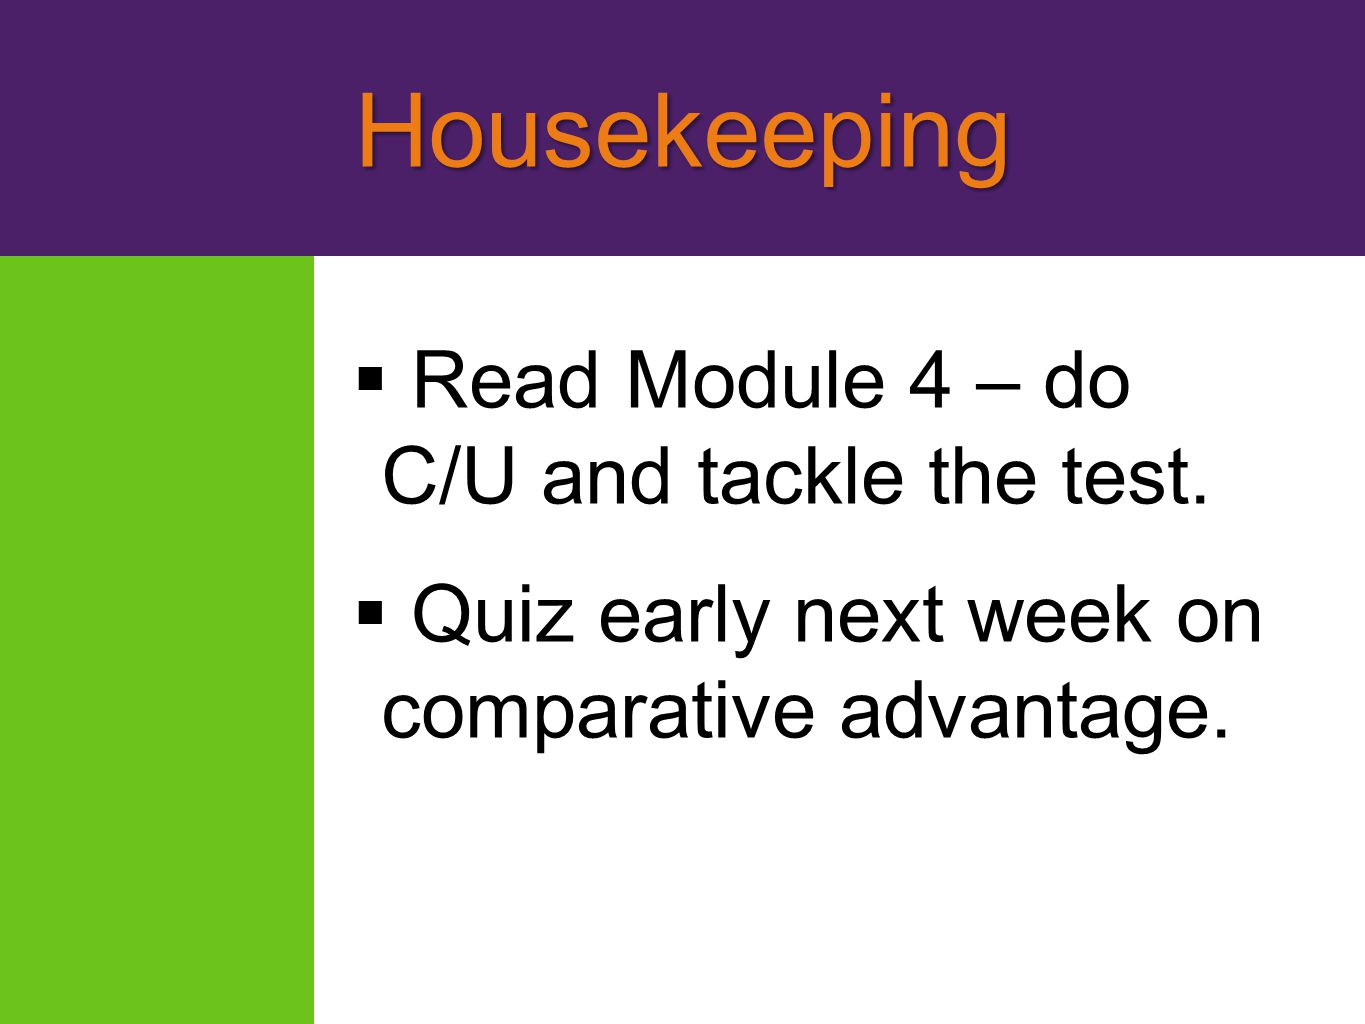 Housekeeping Read Module 4 – do C/U and tackle the test.